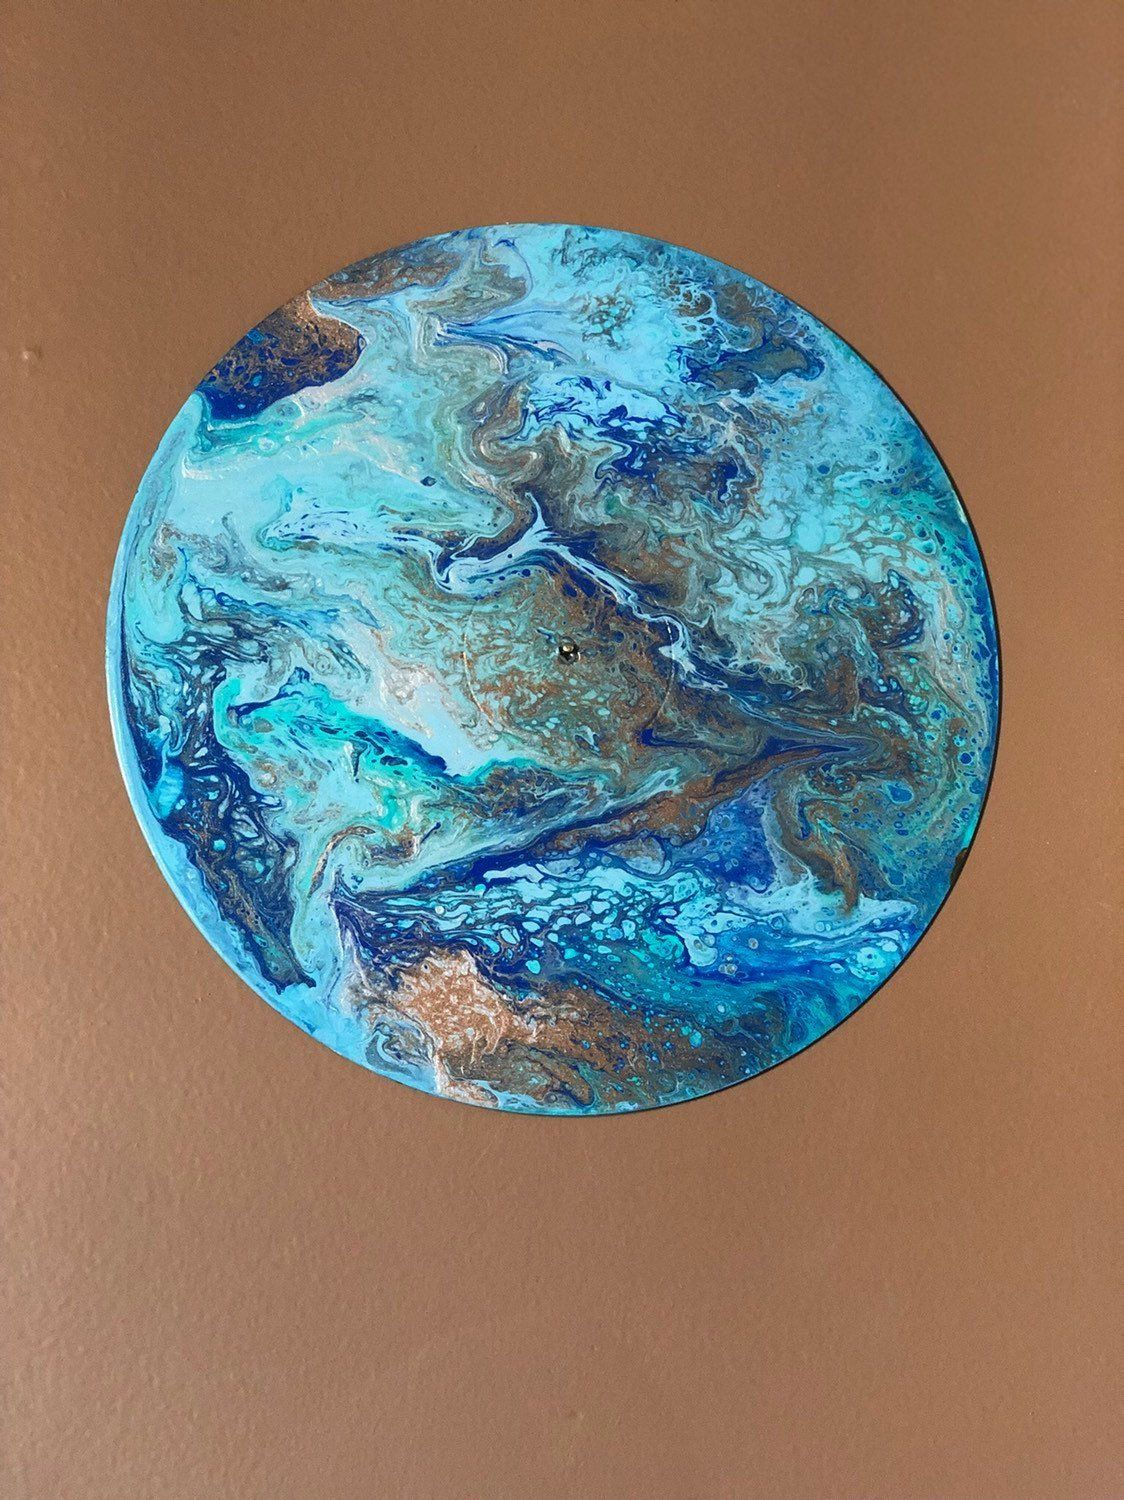 Blue Aqua Gold Planet Painting Fluid Acrylic Flip Cup Style With Minimal Texture On 12 Inch Vinyl Lp Record By A In 2020 Planet Painting Vinyl Painted Fluid Acrylics